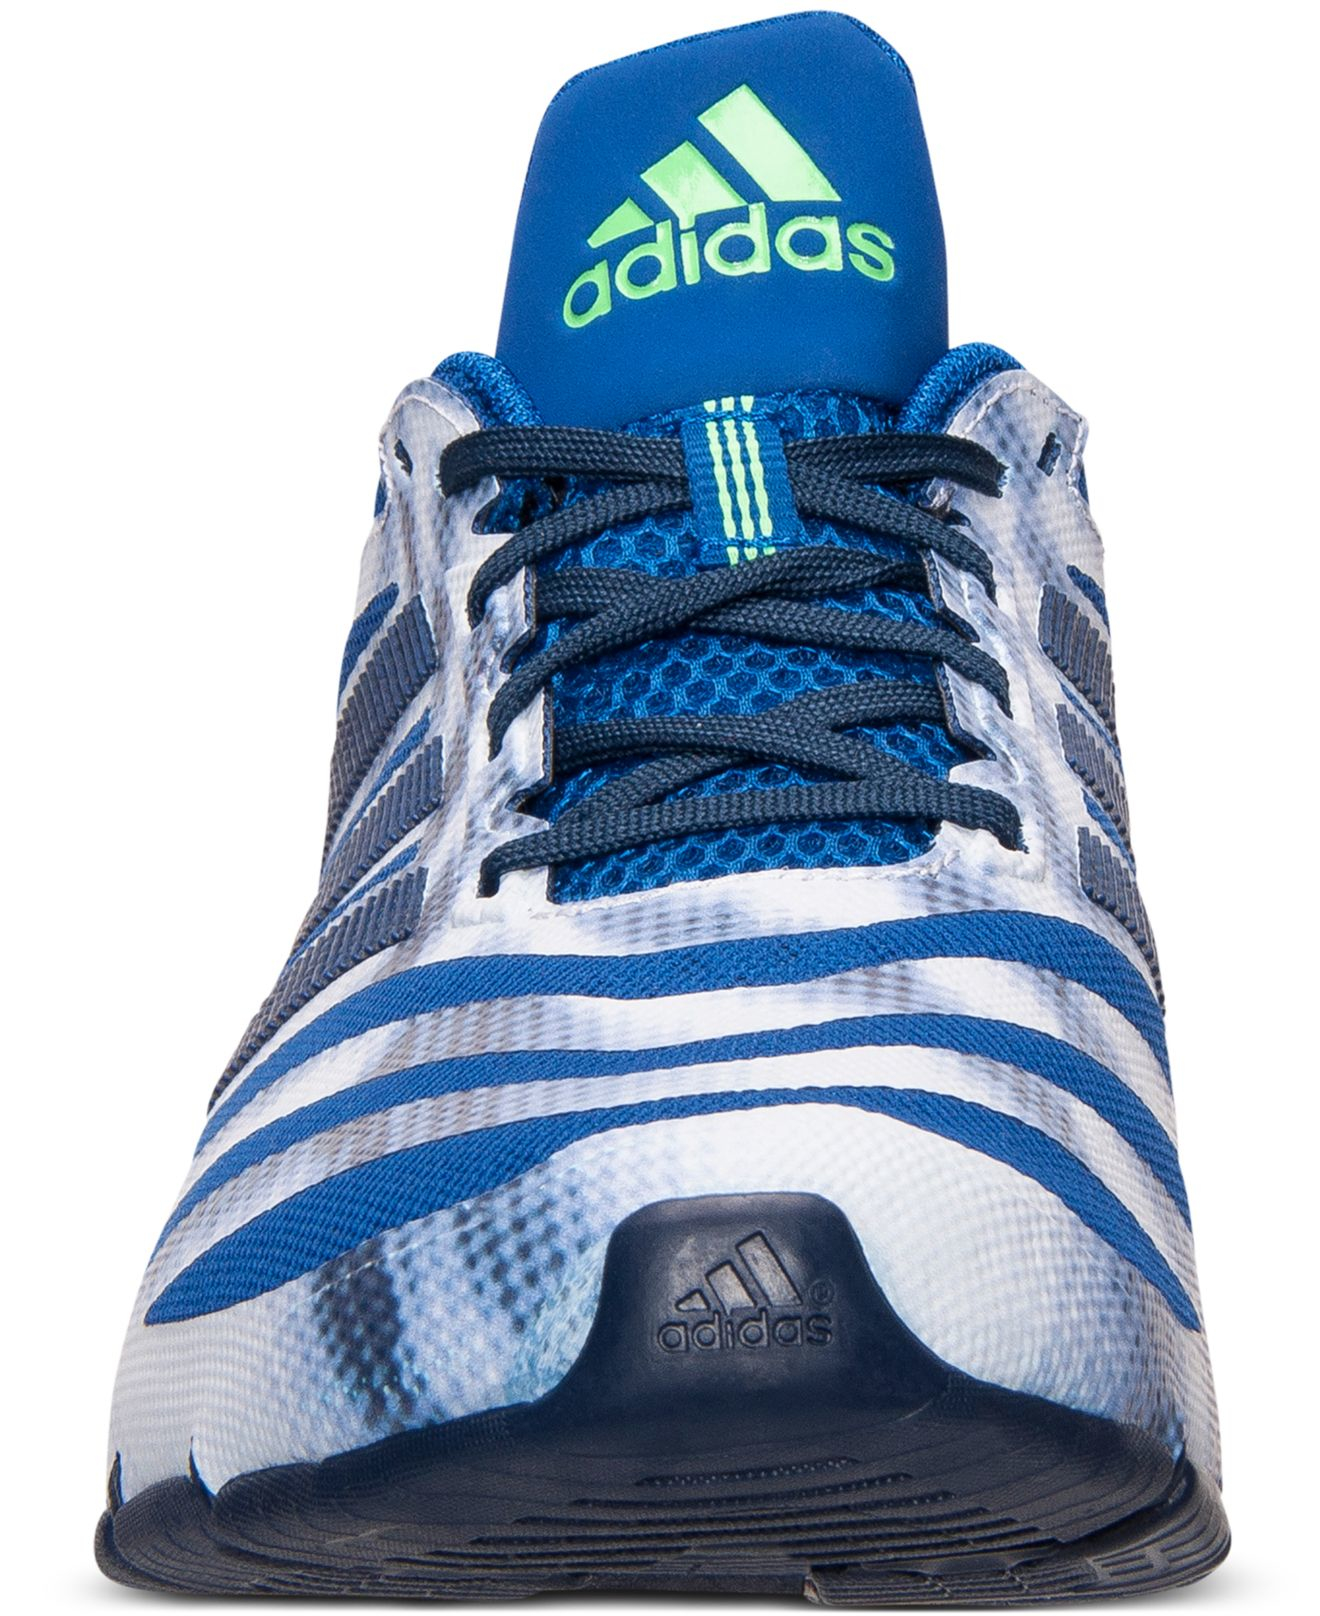 best website b5575 f81b0 ... adidas springblade ignite silver blue adidas springblade ignite sky blue  grey .